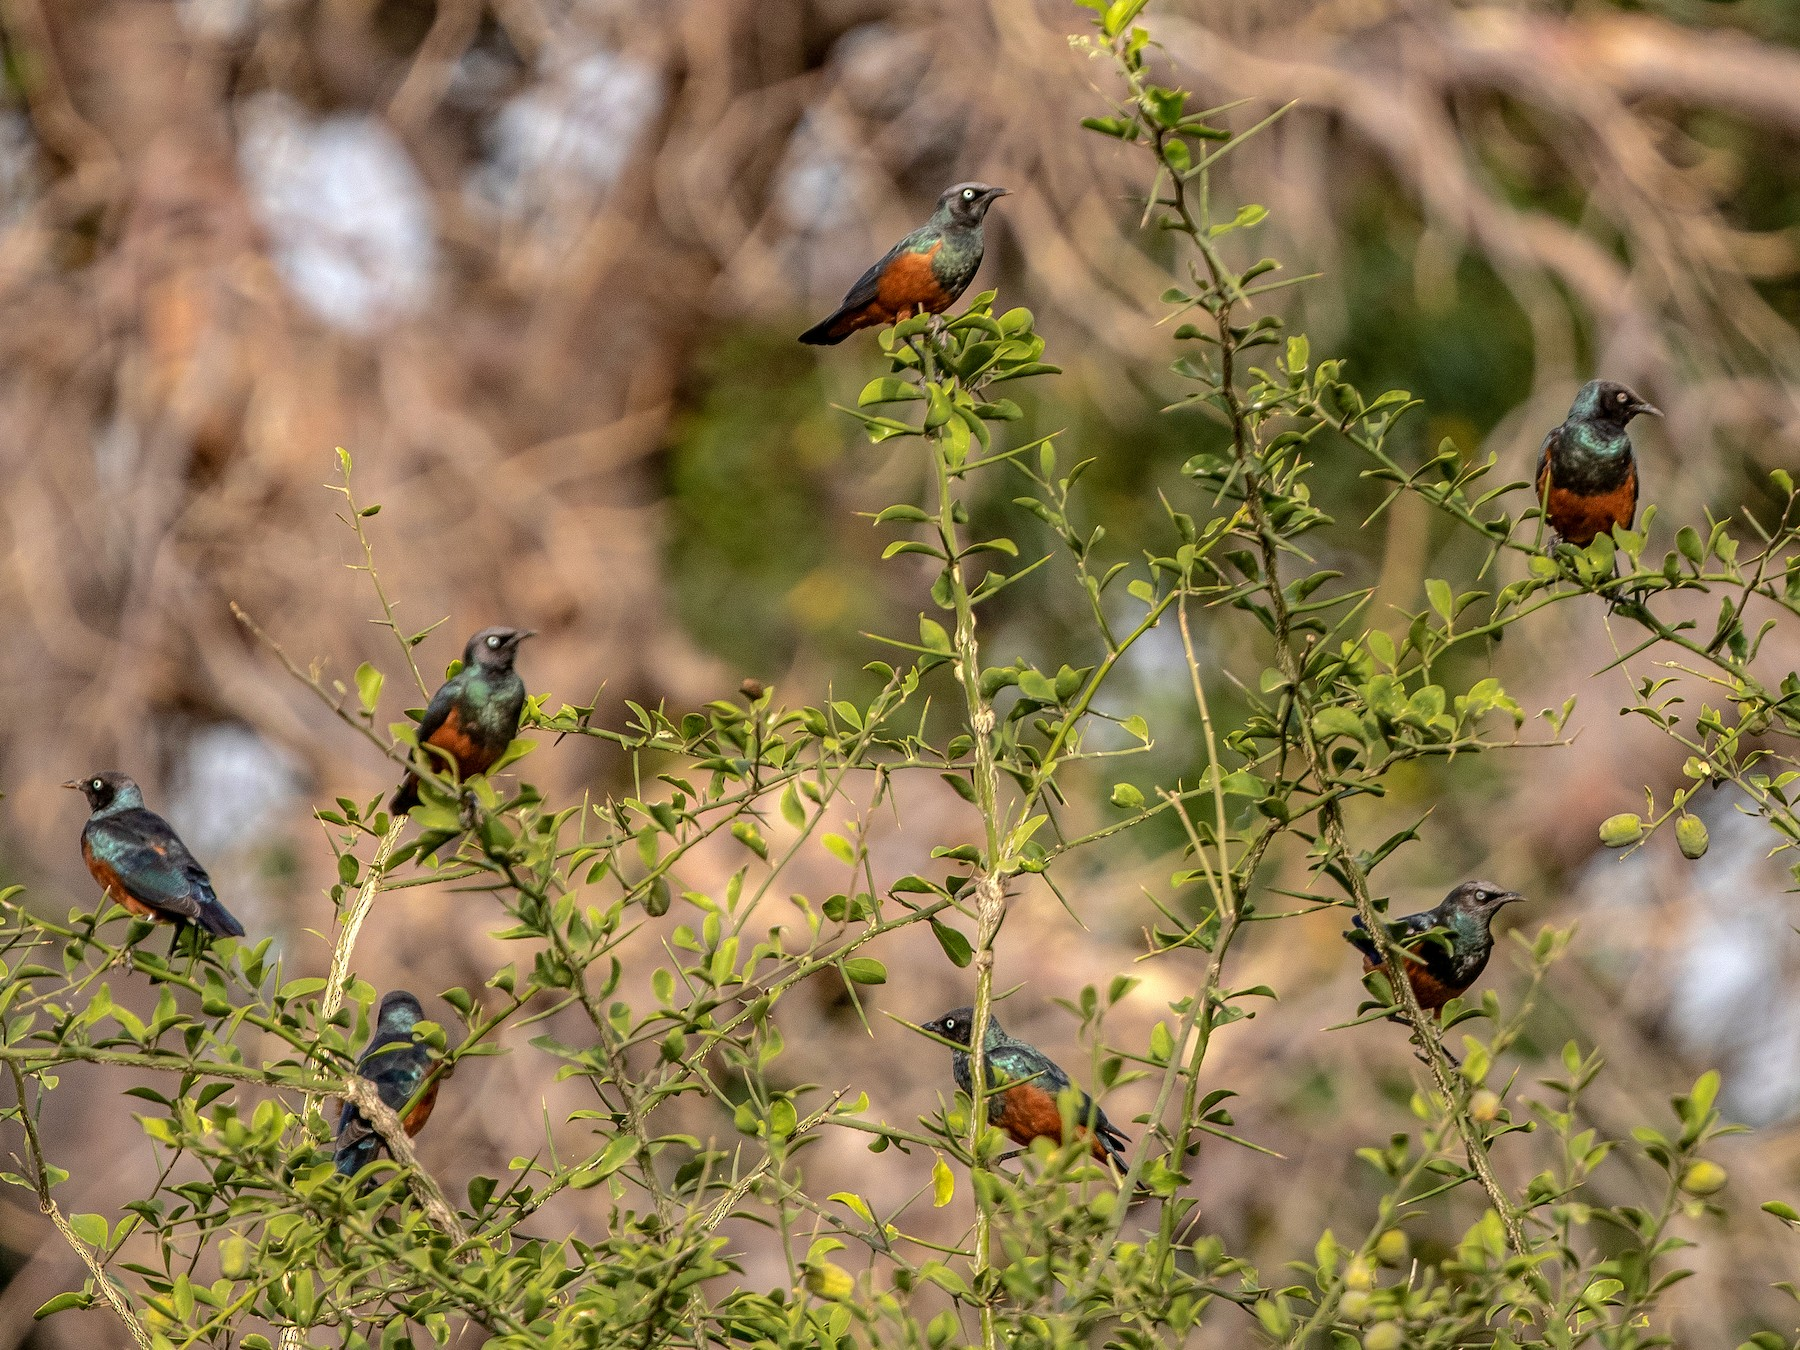 Chestnut-bellied Starling - Per Smith